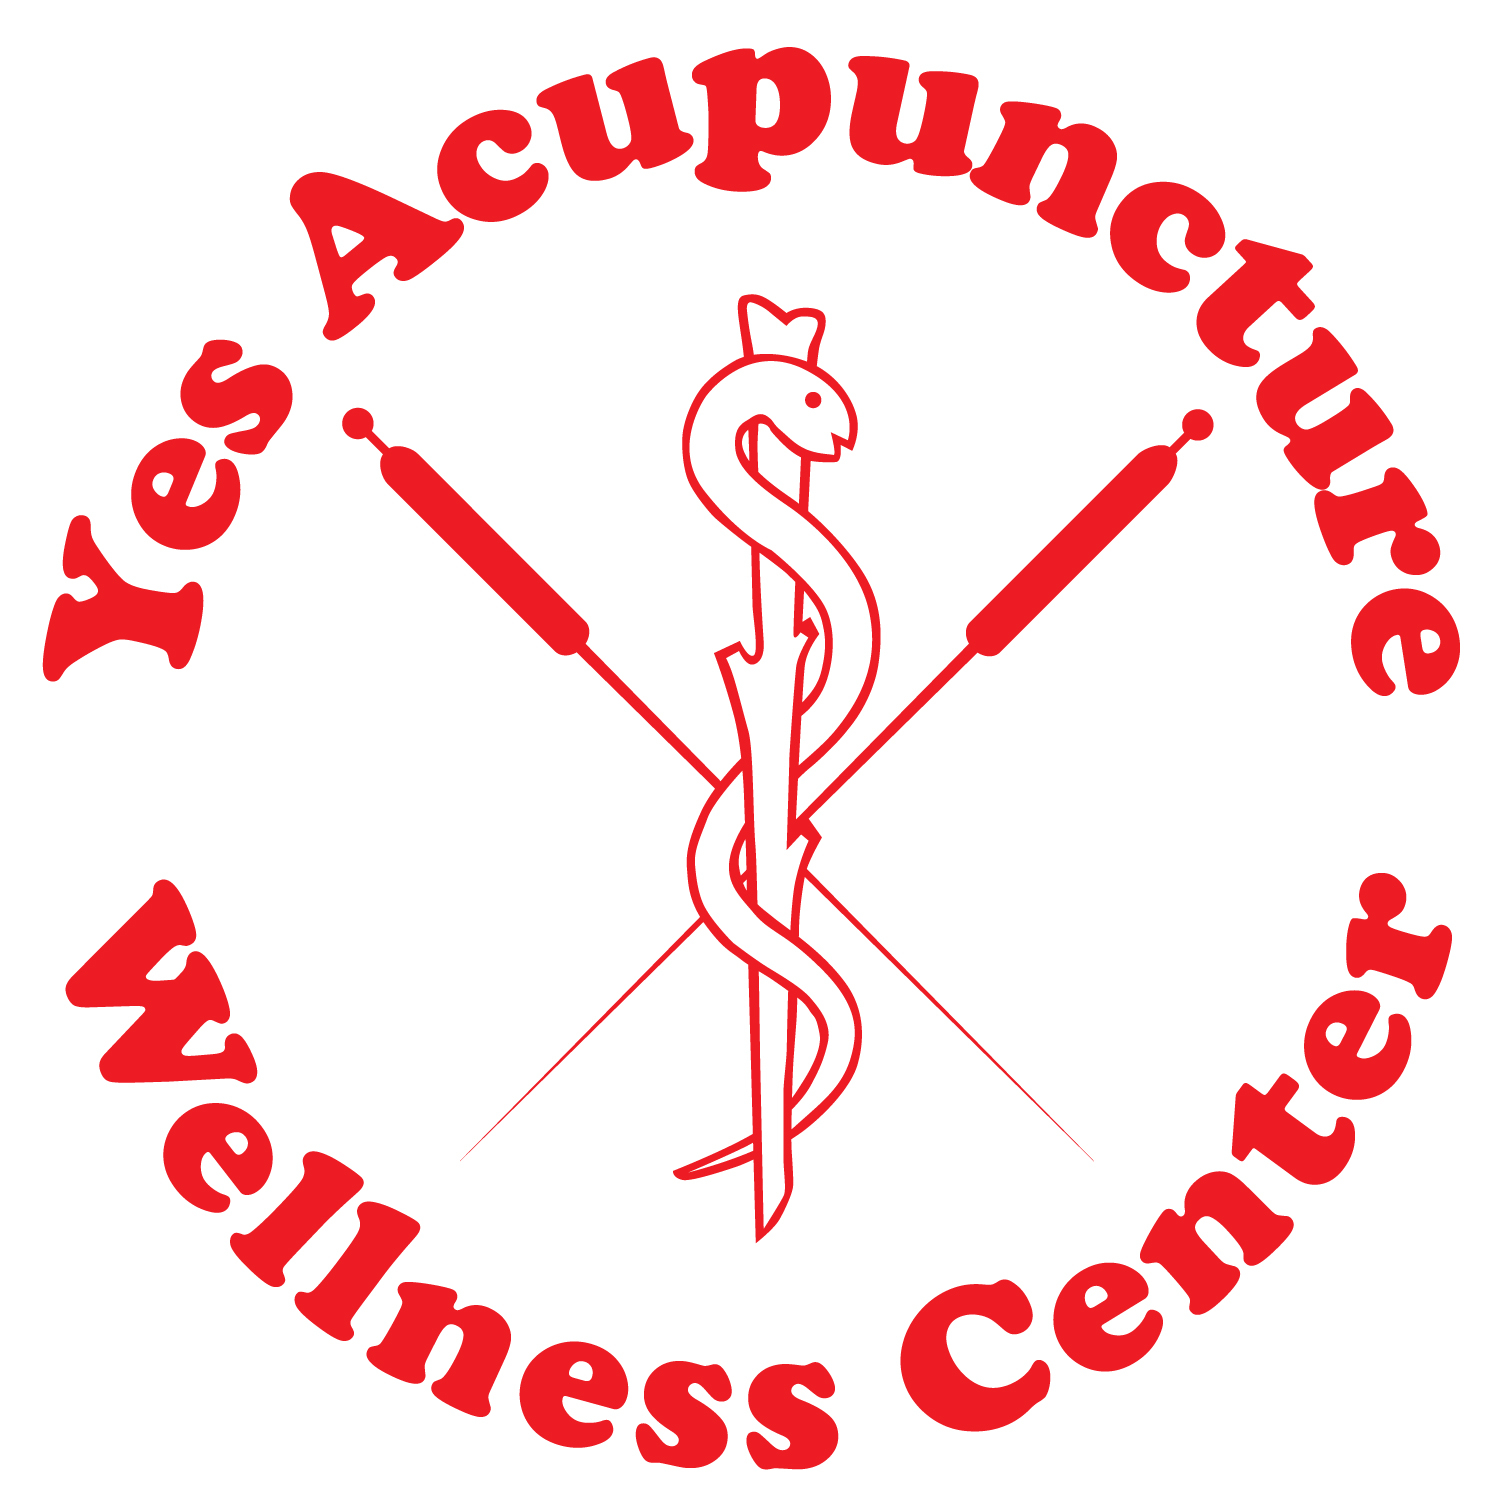 Yes Acupuncture Wellness Center